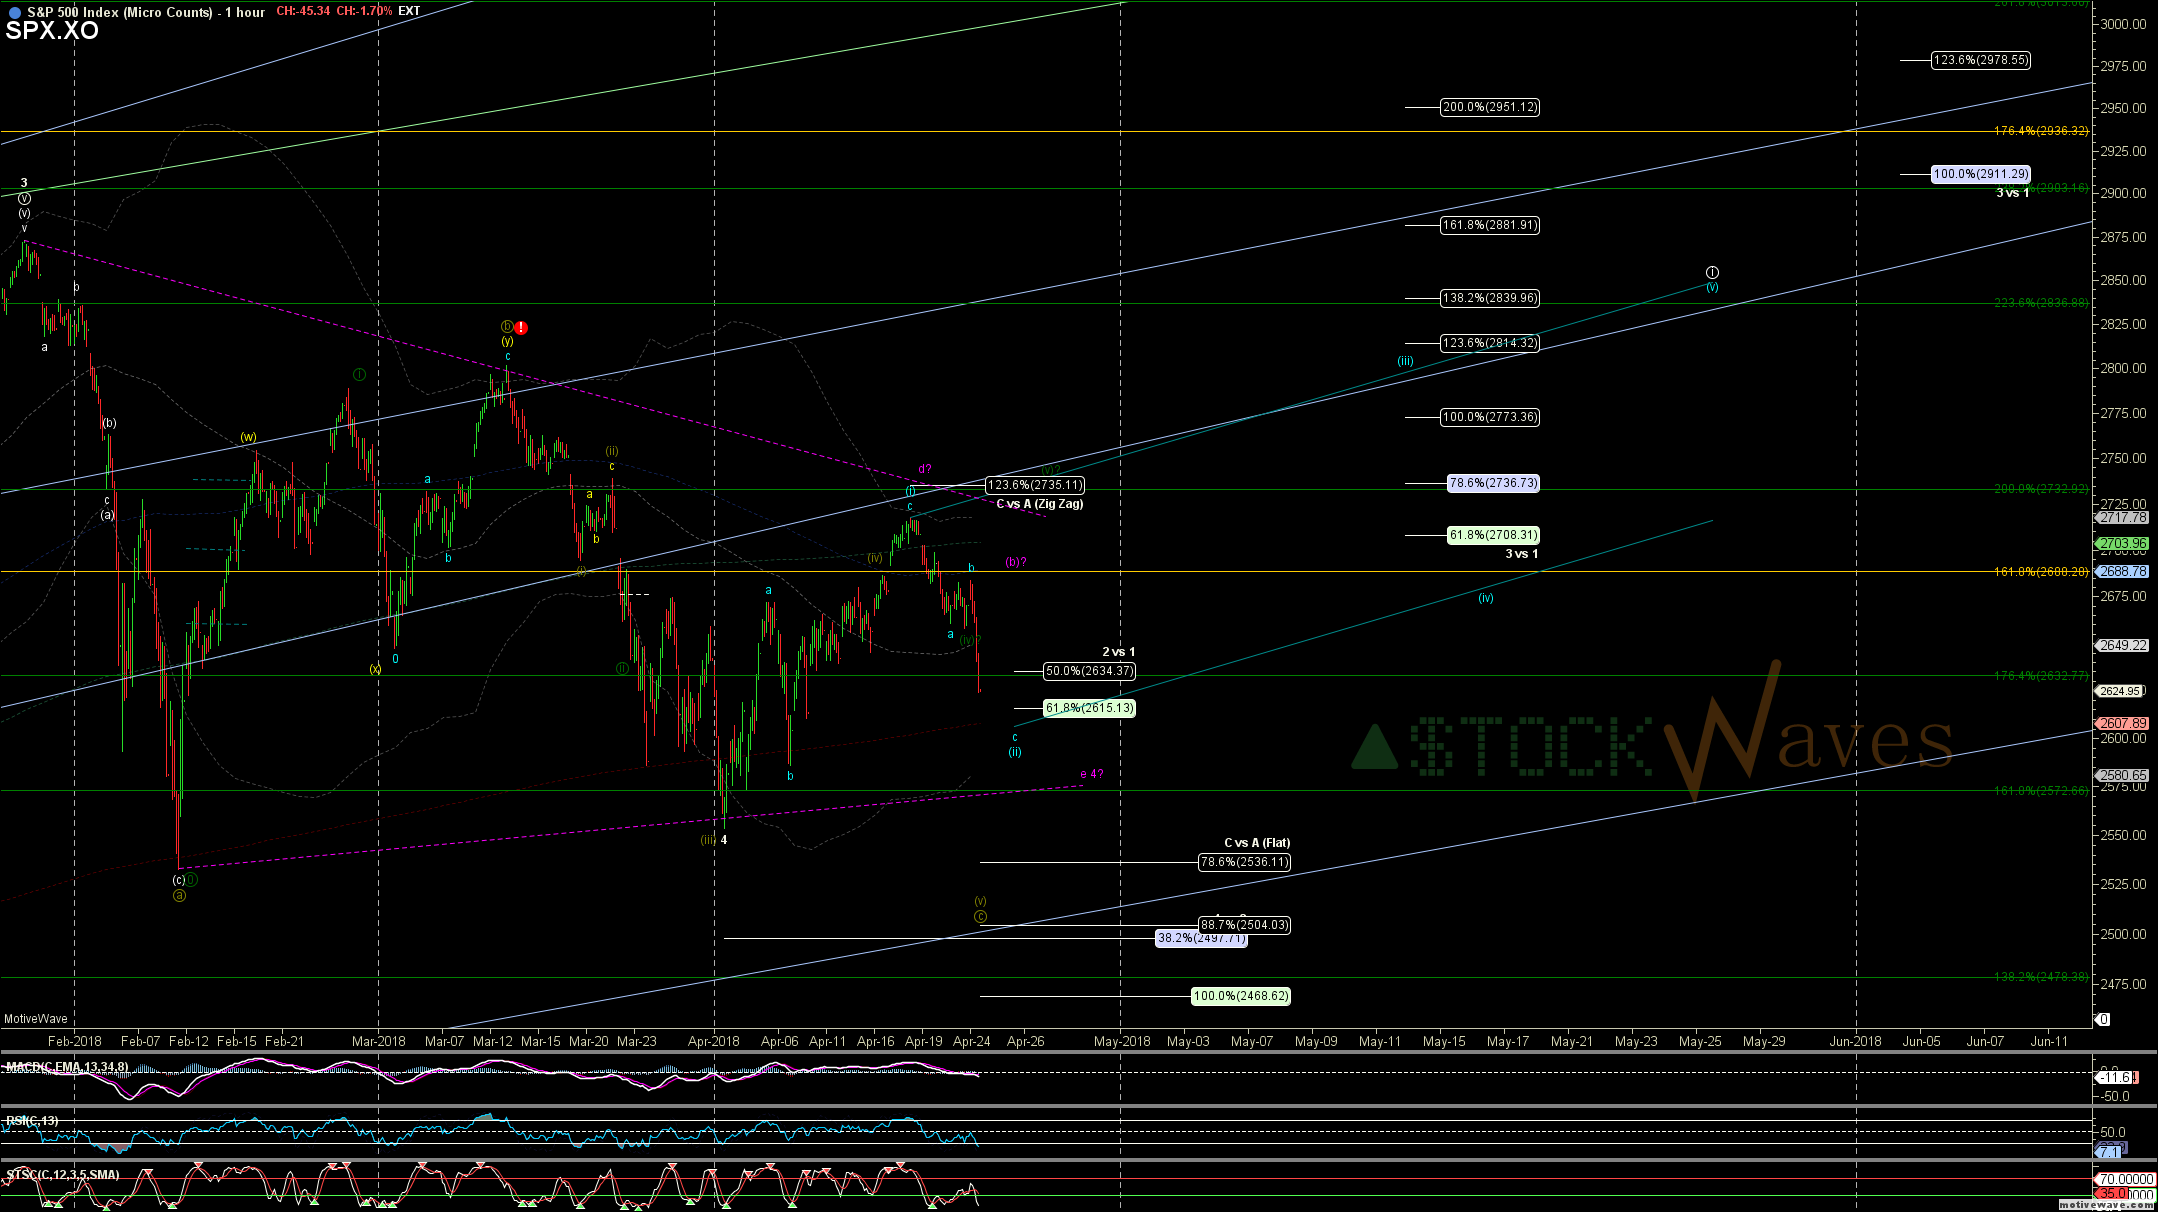 SPX.XO - Micro Counts - Apr-24 1401 PM (1 hour)